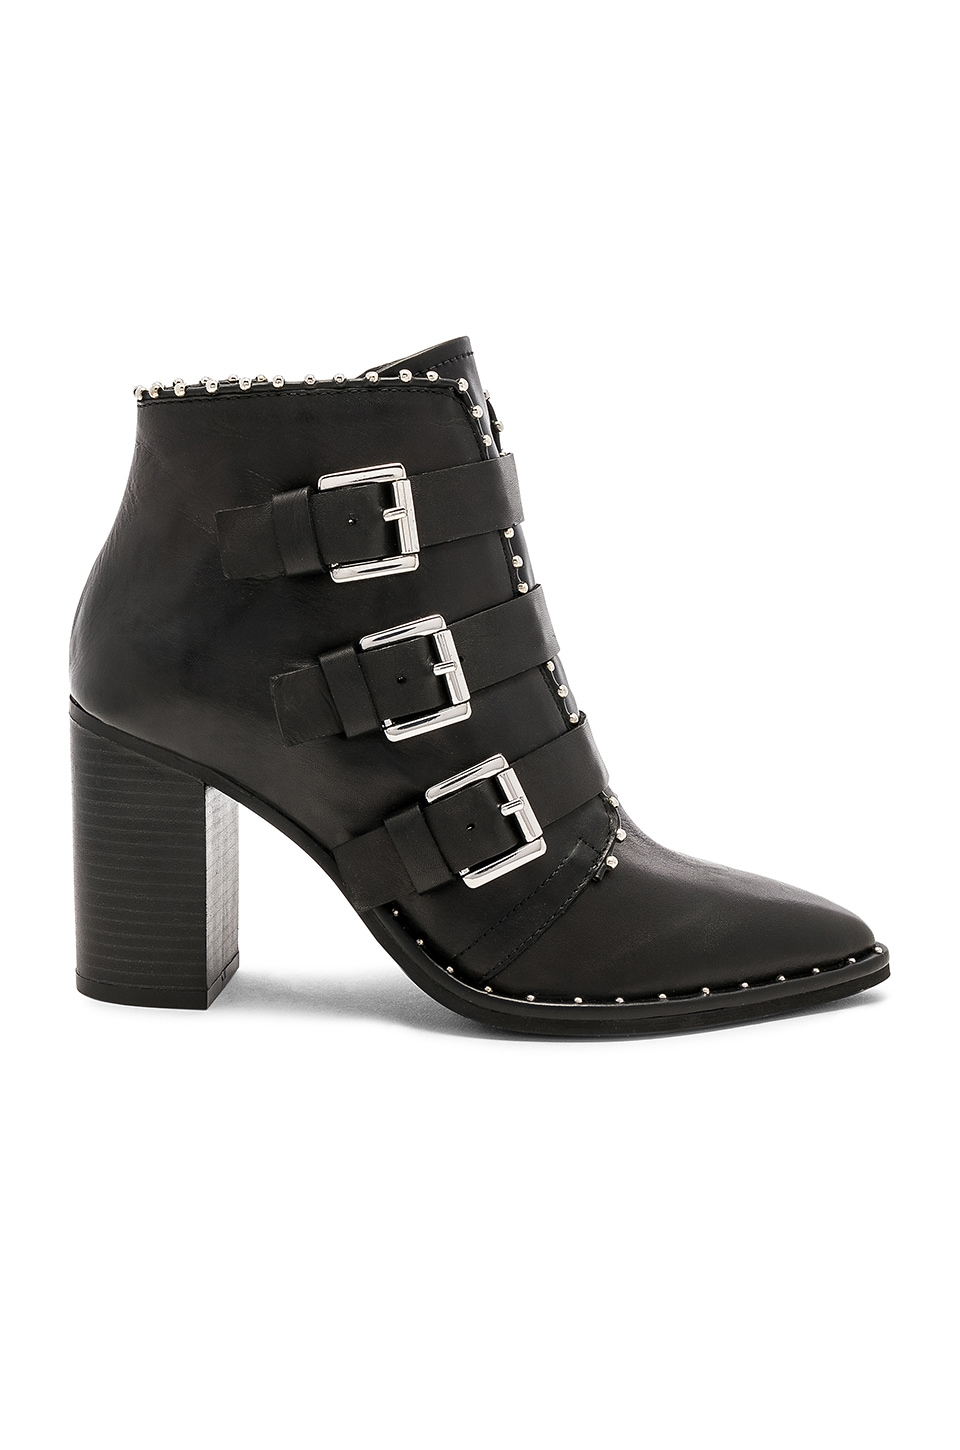 Steve Madden Humble Bootie in Black